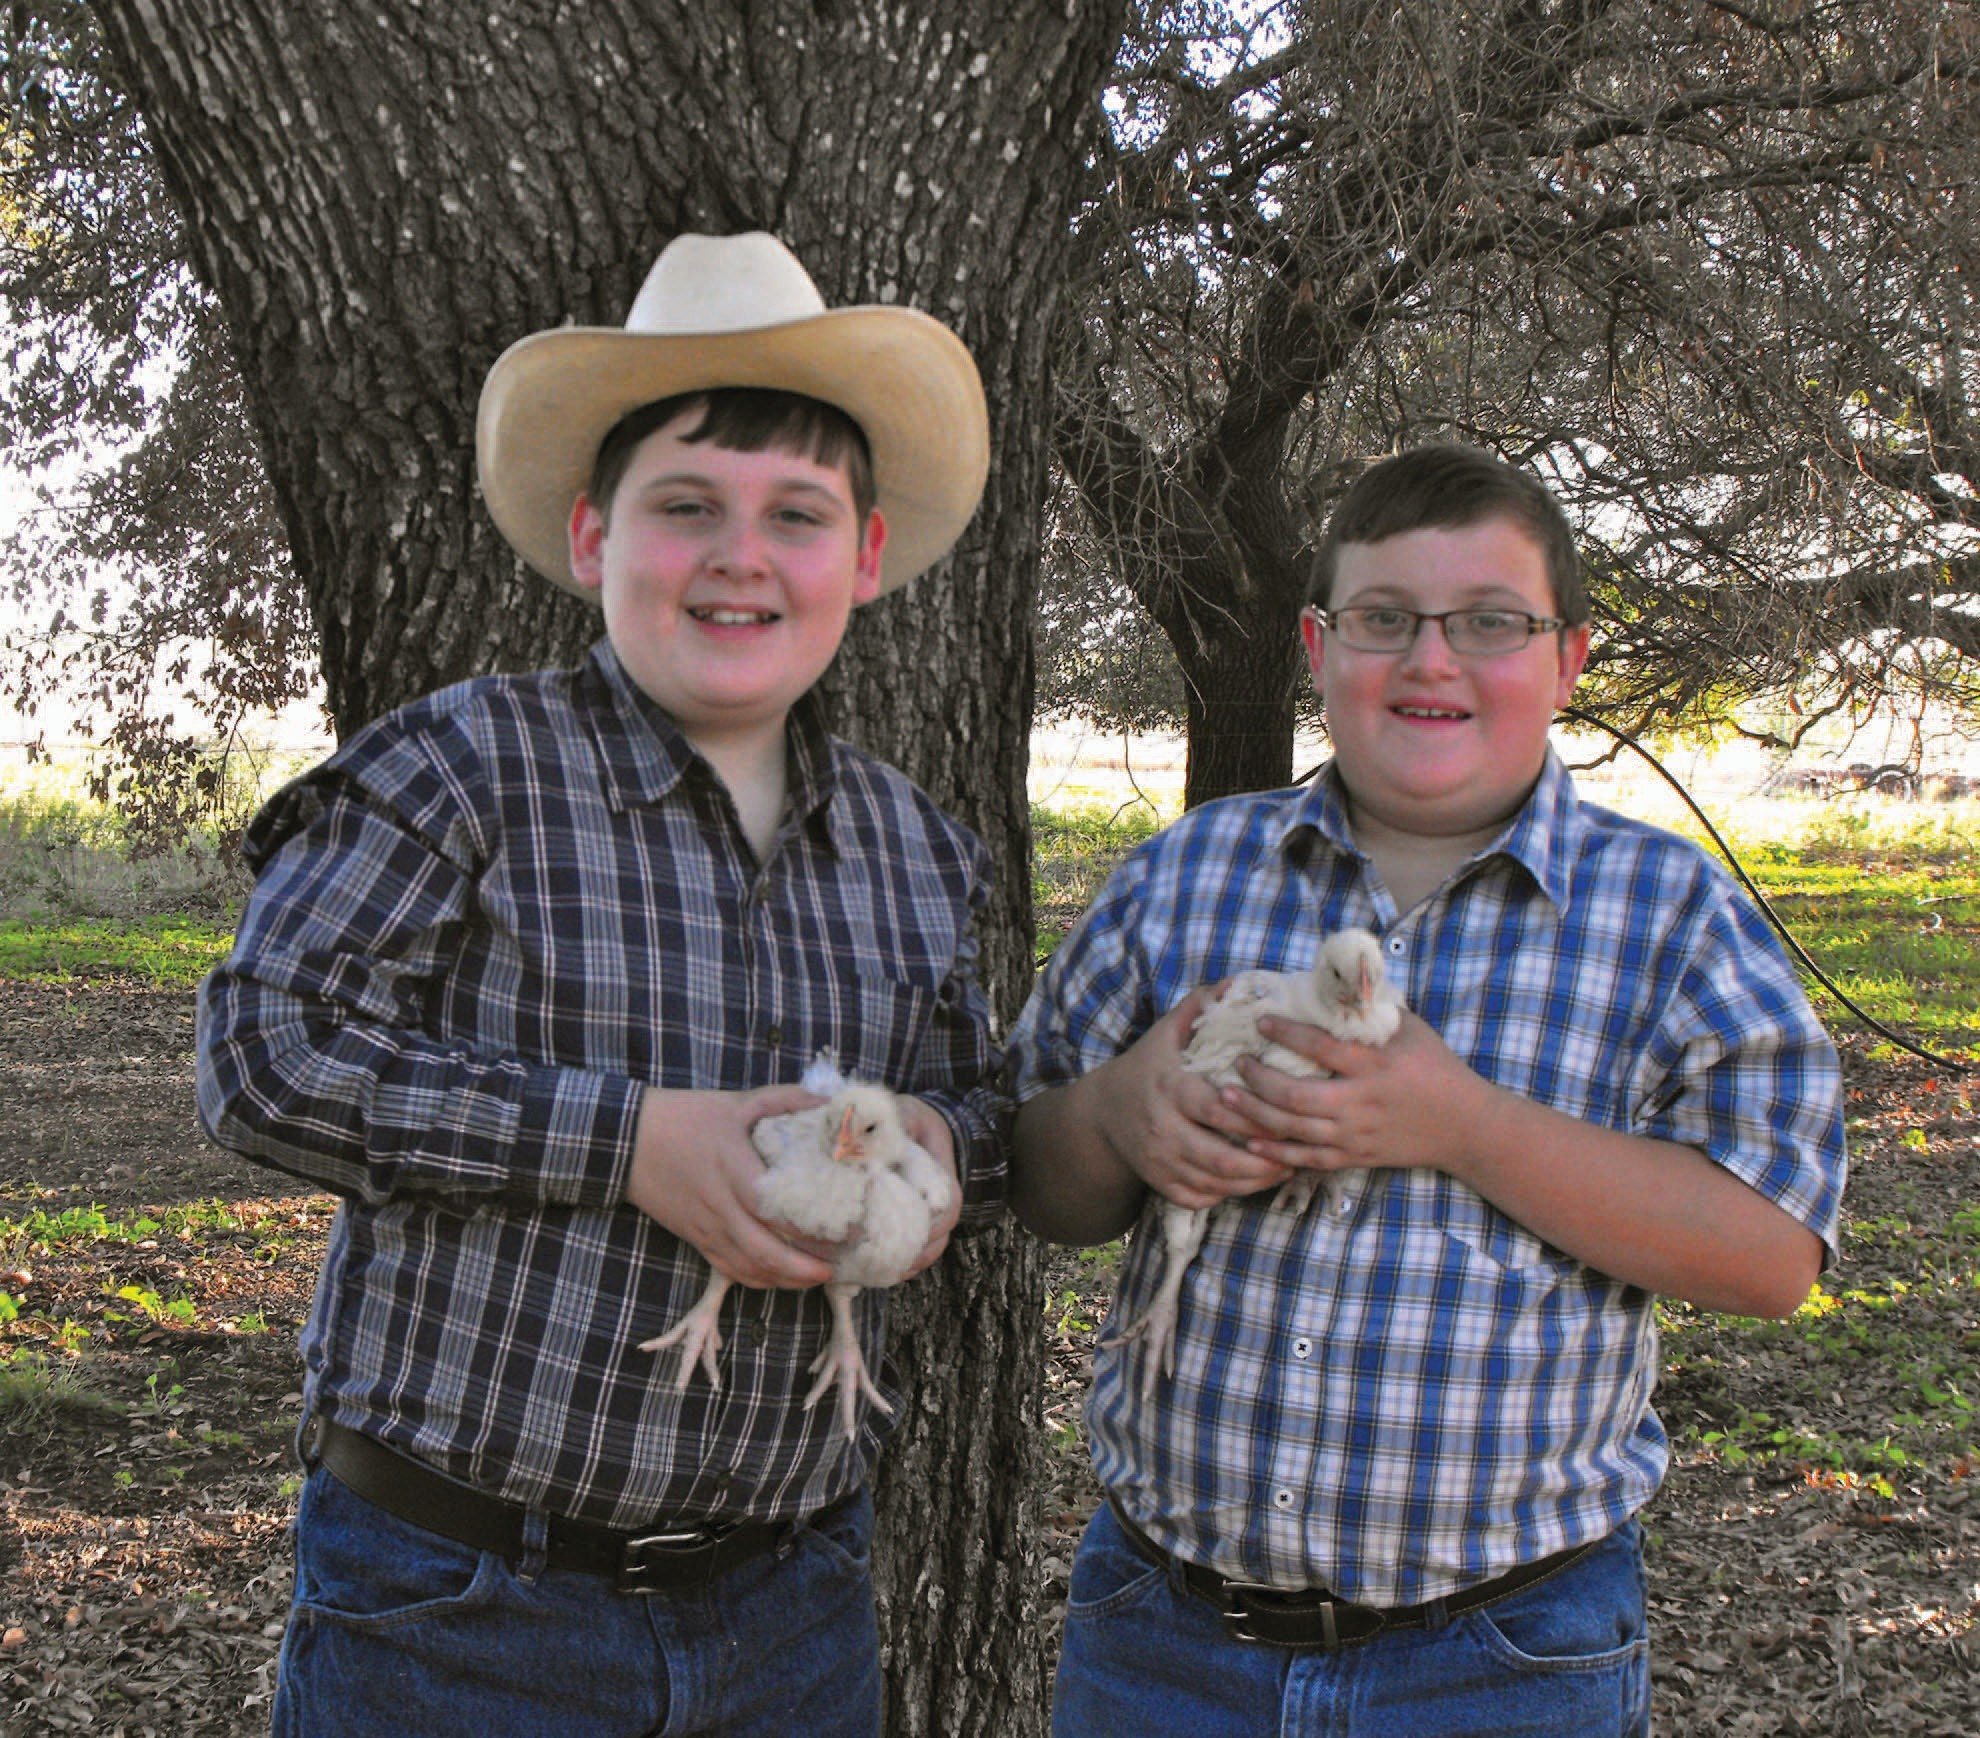 Luke and Seth Robertson of Charlotte proudly hold two of their 50 chickens. They will each be showing one pen, or three chickens at the Atascosa County Livestock Show. The show will be from January 17-21 at the Atascosa County Showbarn. Luke and Seth are the sons of Kenny and Leah Robertson. Luke is a homeschooled 6th grader and Seth is a 3rd grader in Charlotte Elementary. They are showing their chickens through Charlotte 4-H.